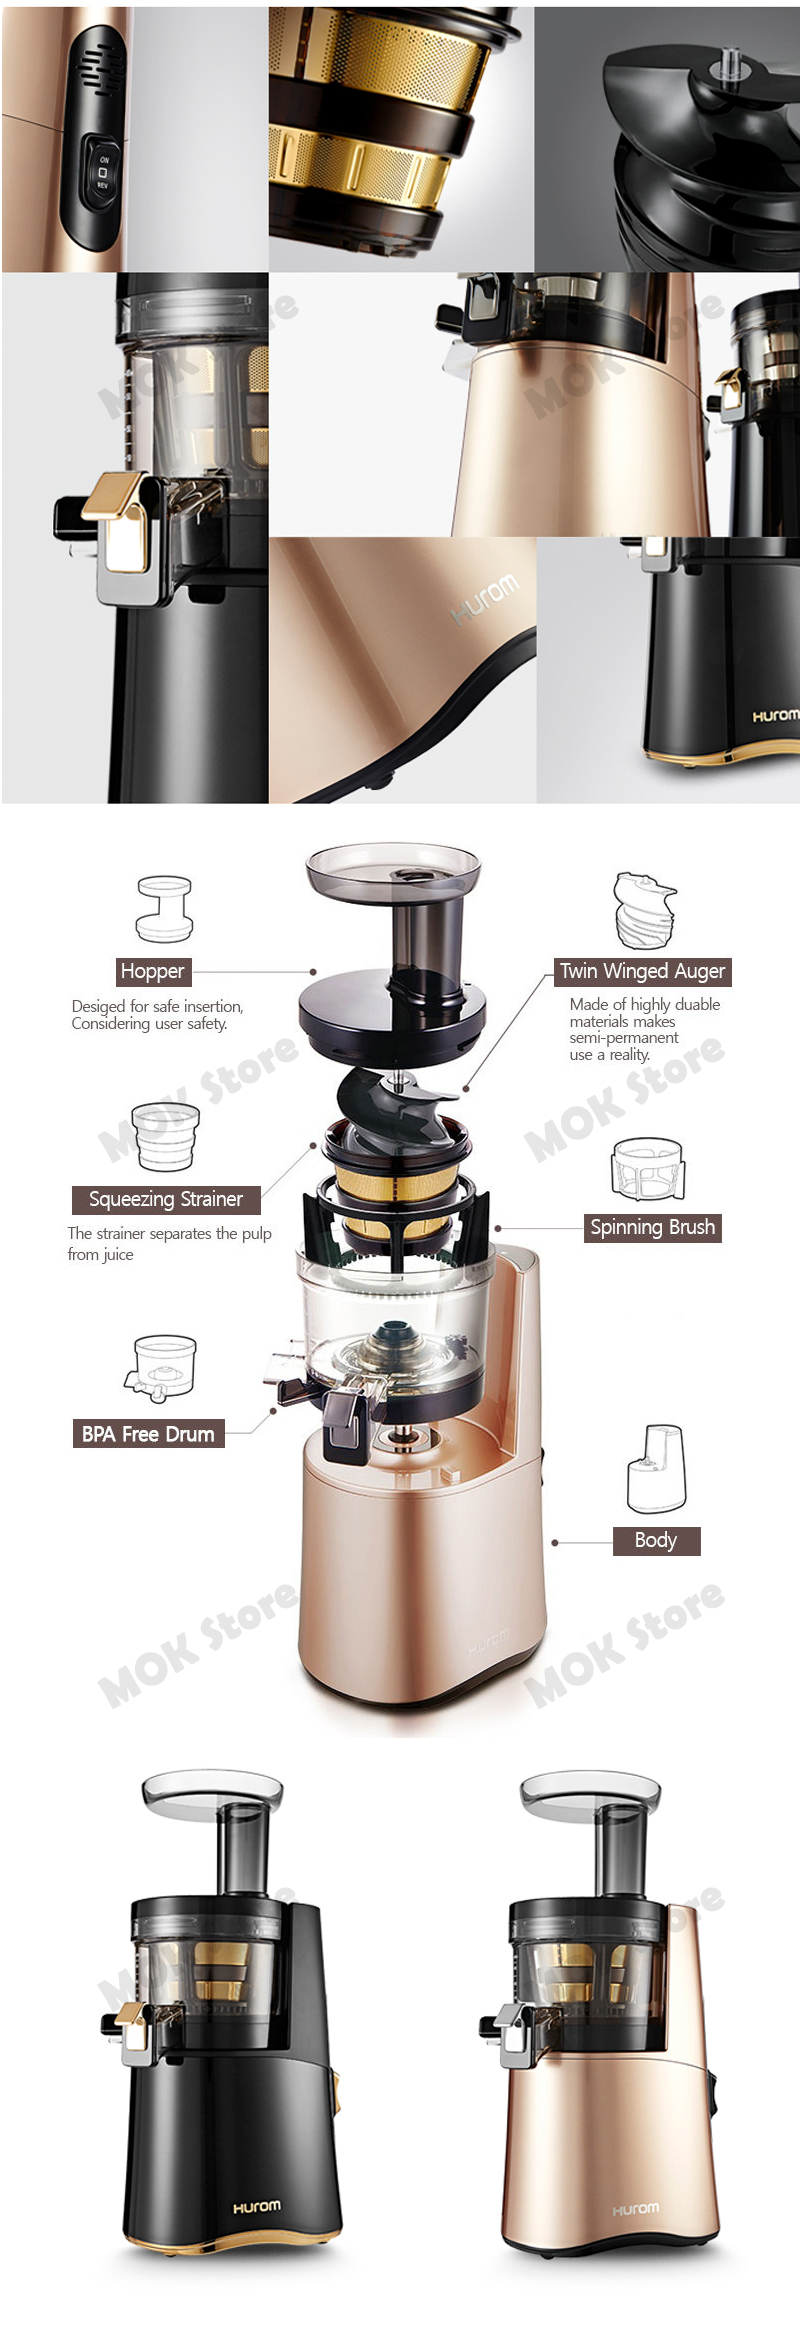 Hurom Premium Slow Juicer Alpha Plus : Hurom Alpha H AA LBF17 Premium Slow Cold Press Juicer Squeeze Extractor Black eBay